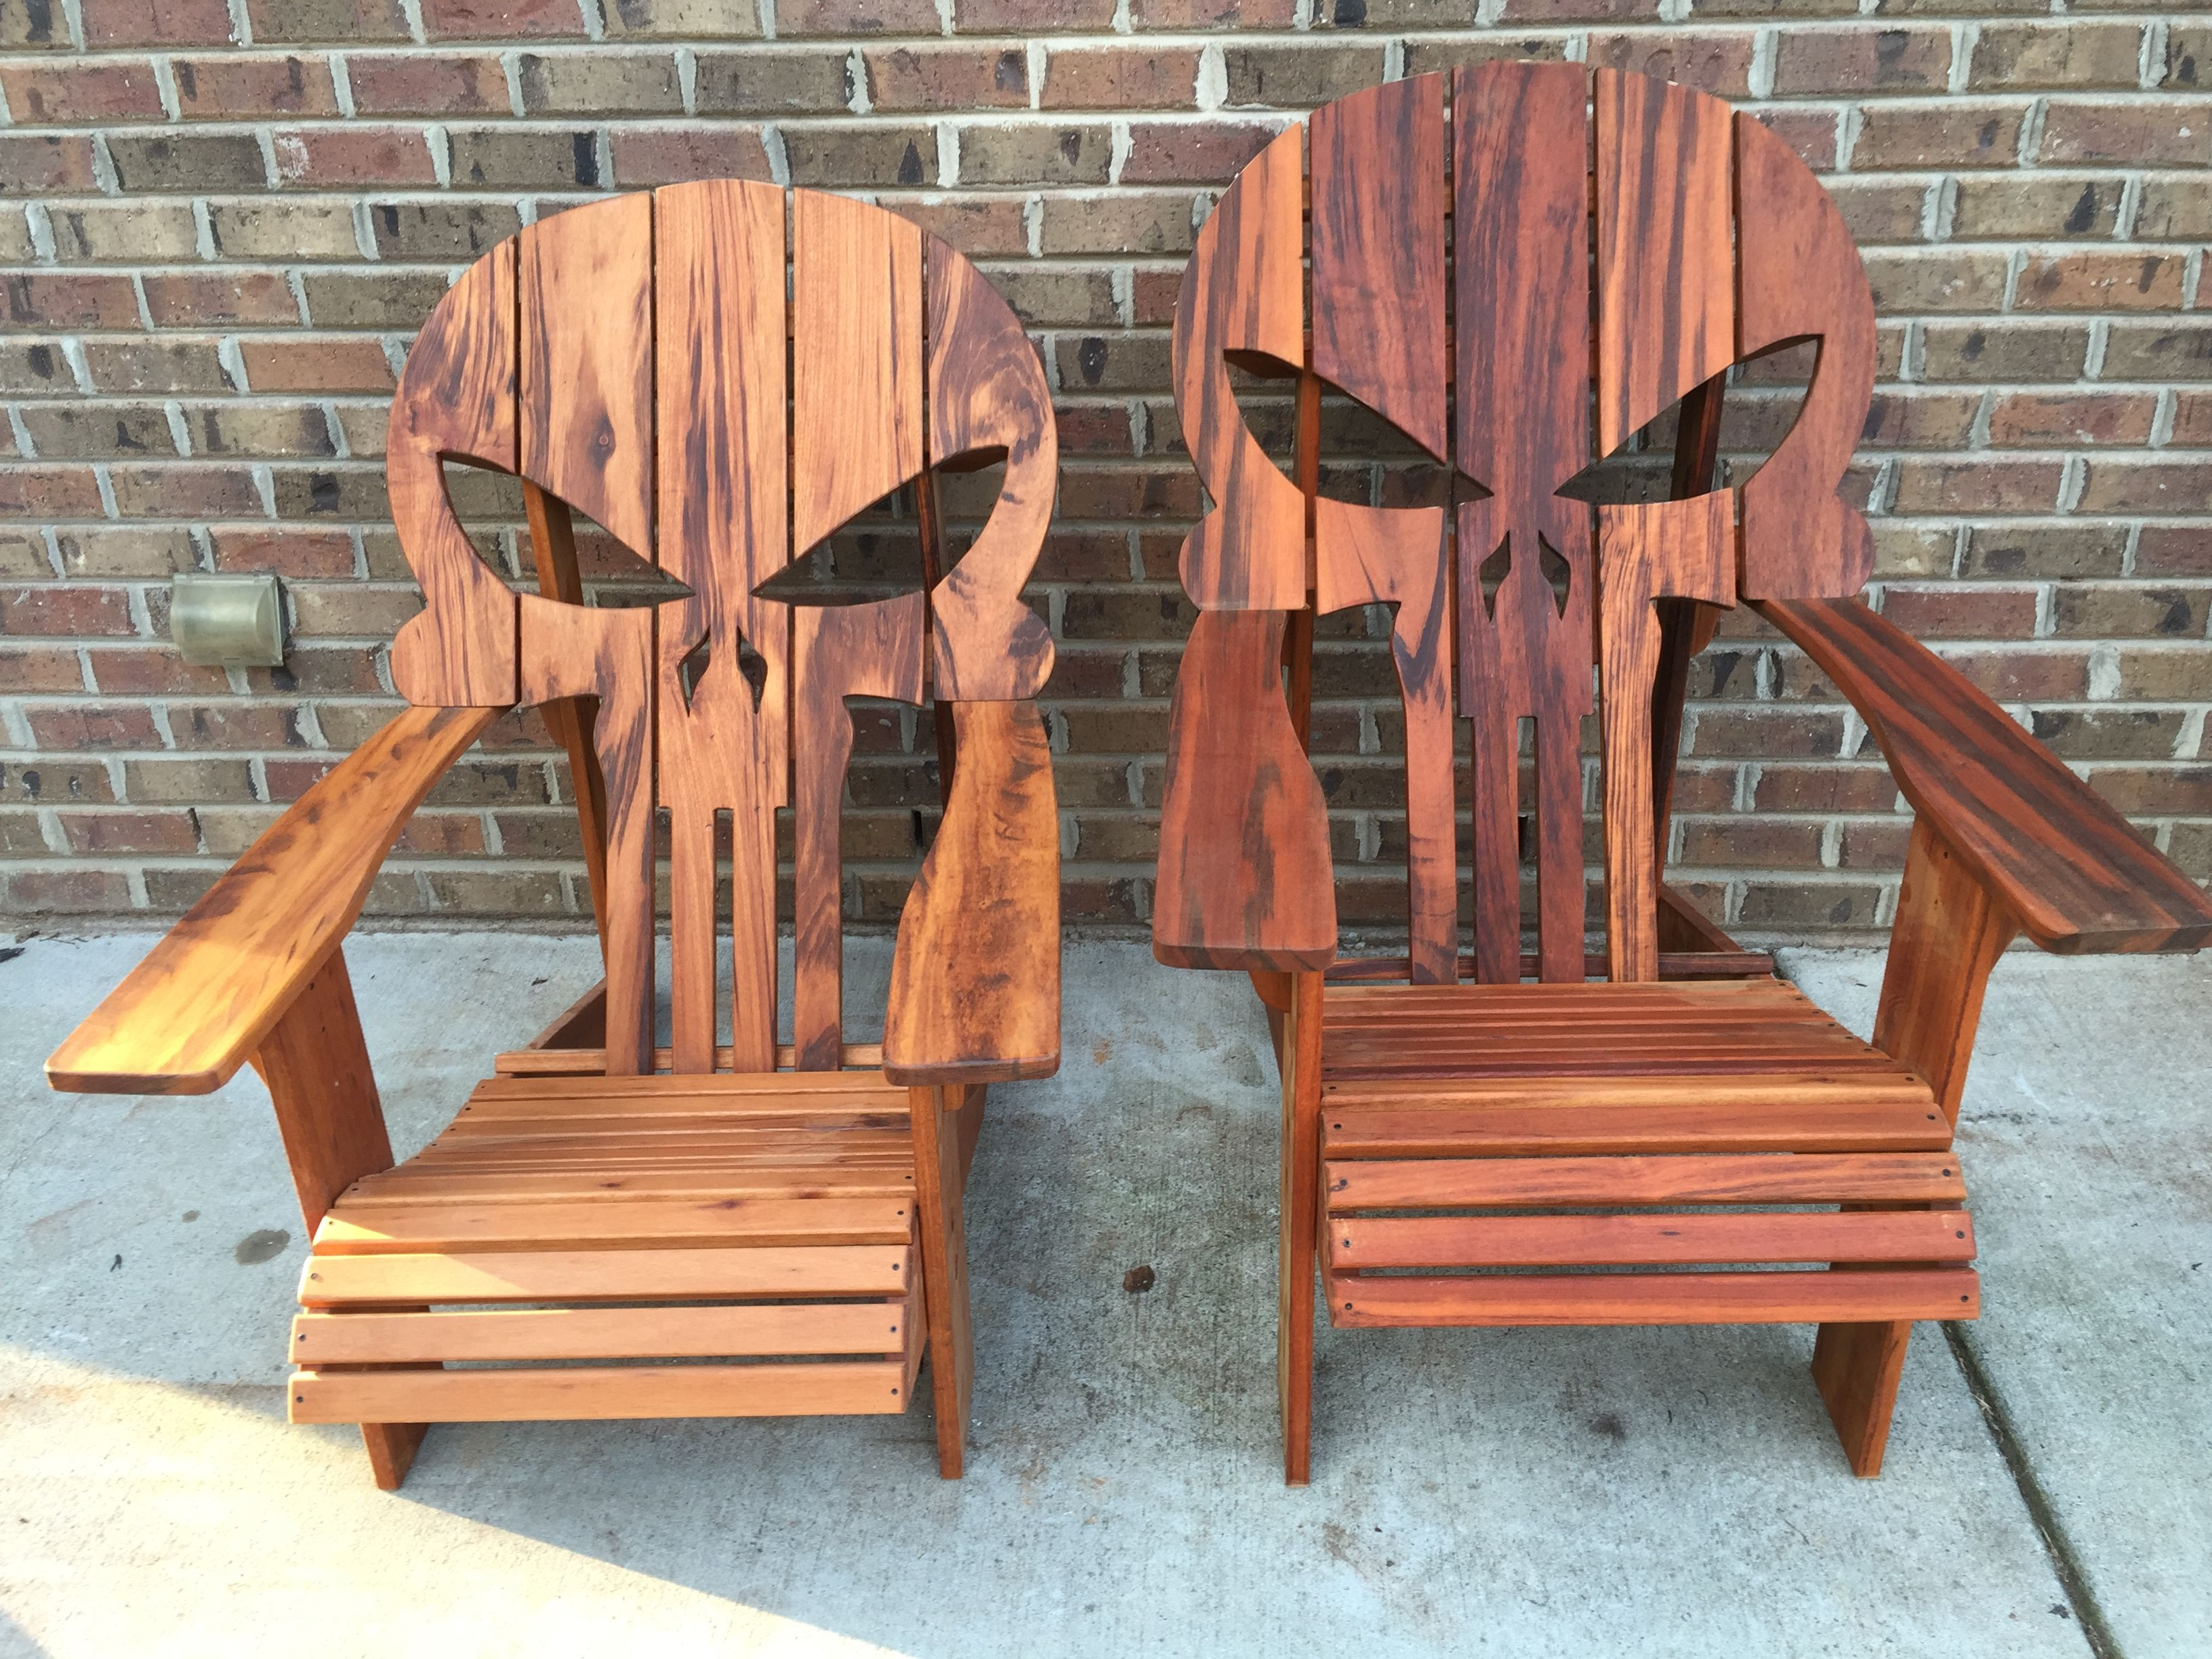 Wooden Skull Chair Summer Infant Classic Comfort Wood High Diy Easy Step By Plans To Build Your Own Punisher